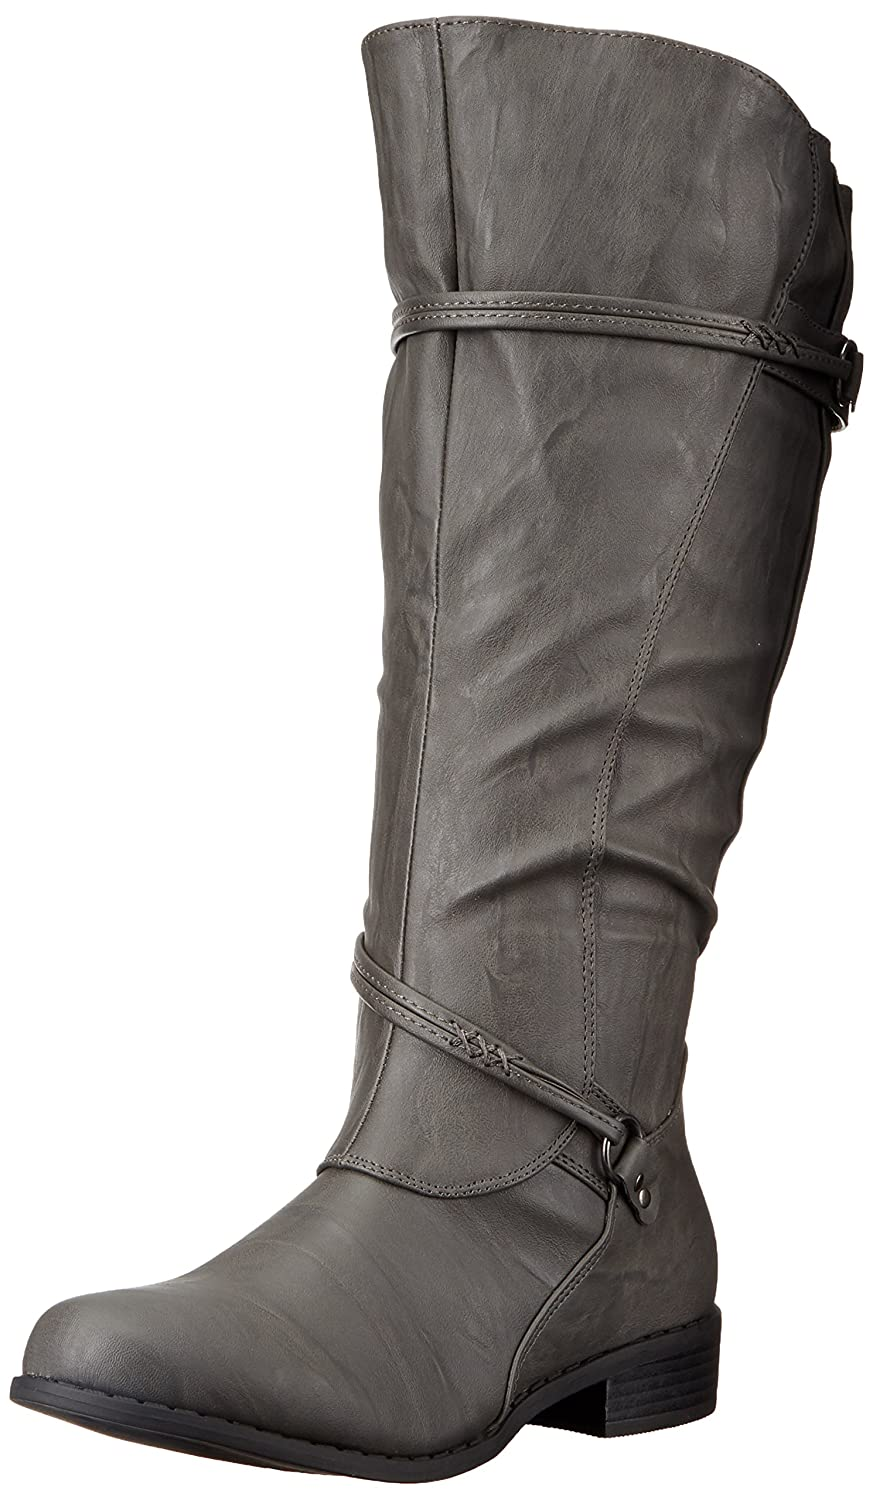 Brinley Co Women's Olive-Xwc Riding Boot B01G3R14Y4 8 B(M) US|Grey Extra Wide Calf